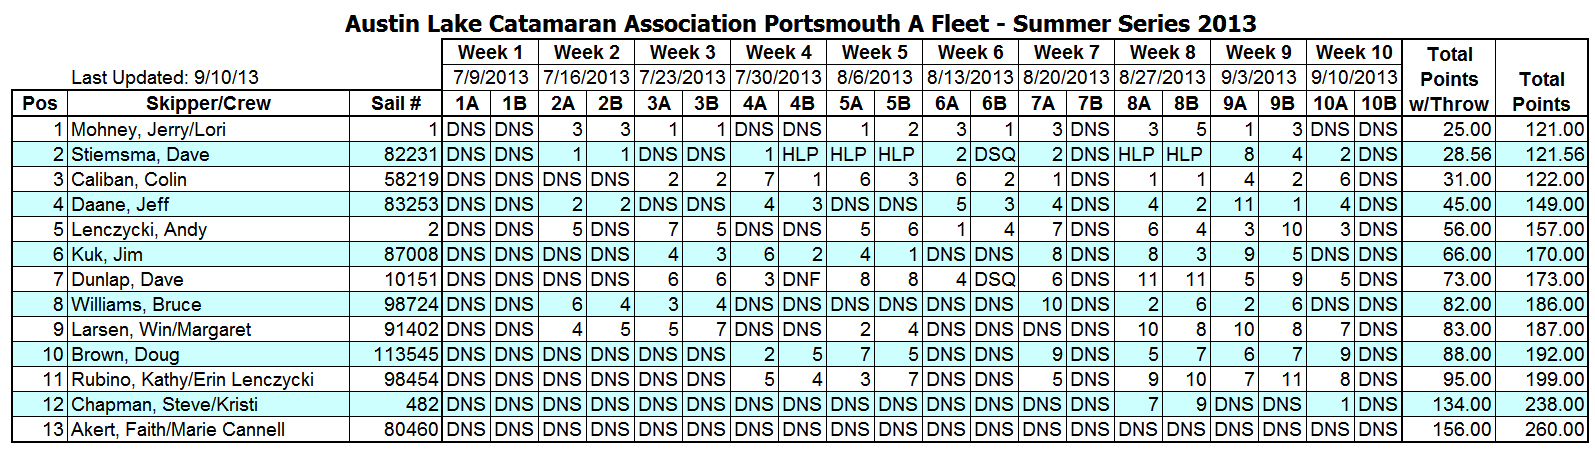 2013 Summer Portsmouth A Fleet Results